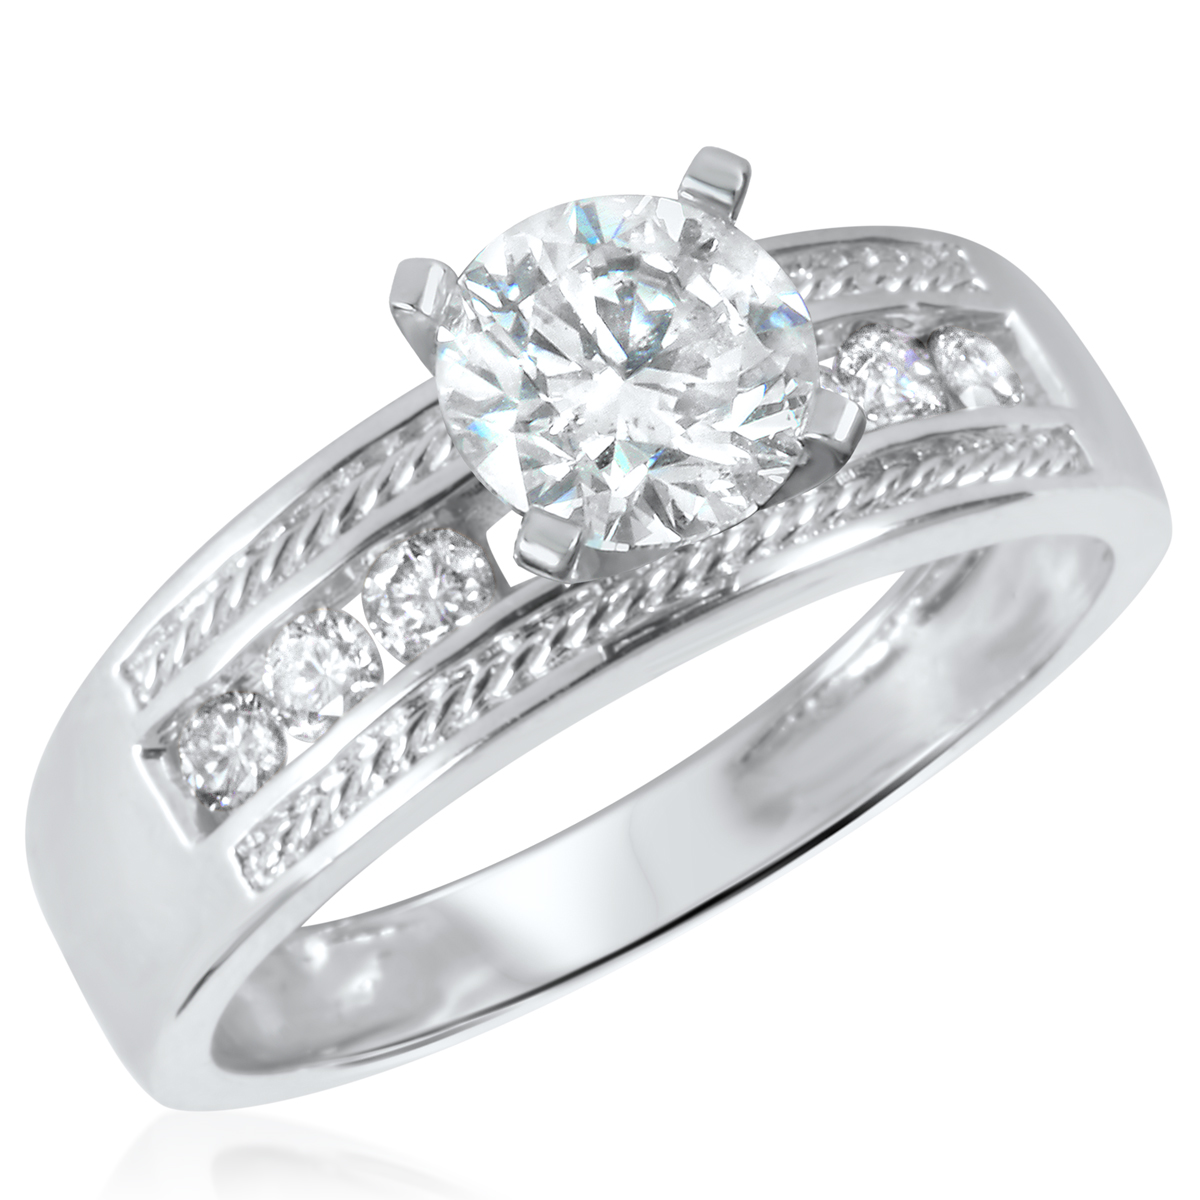 1 1/4 CT. T.W. Diamond Ladies Engagement Ring 10K White Gold- Size 8